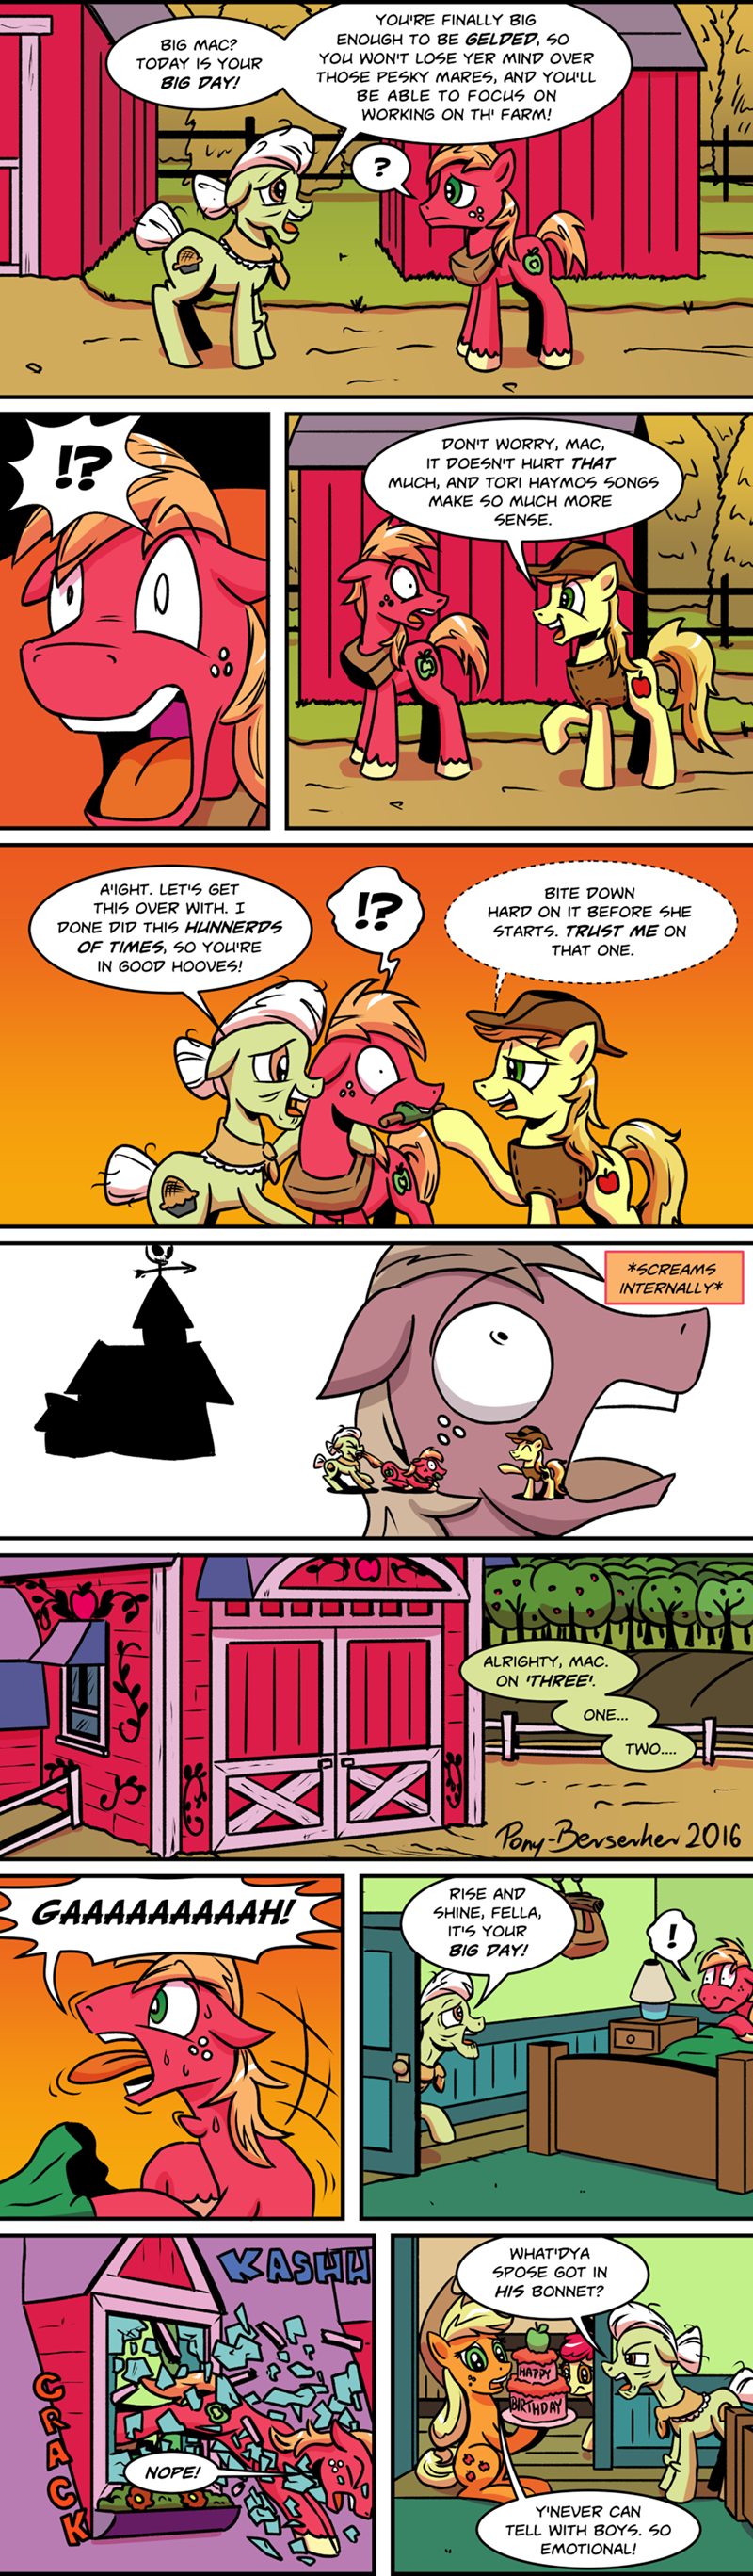 applejack braeburn apple bloom Big Macintosh granny smith comic